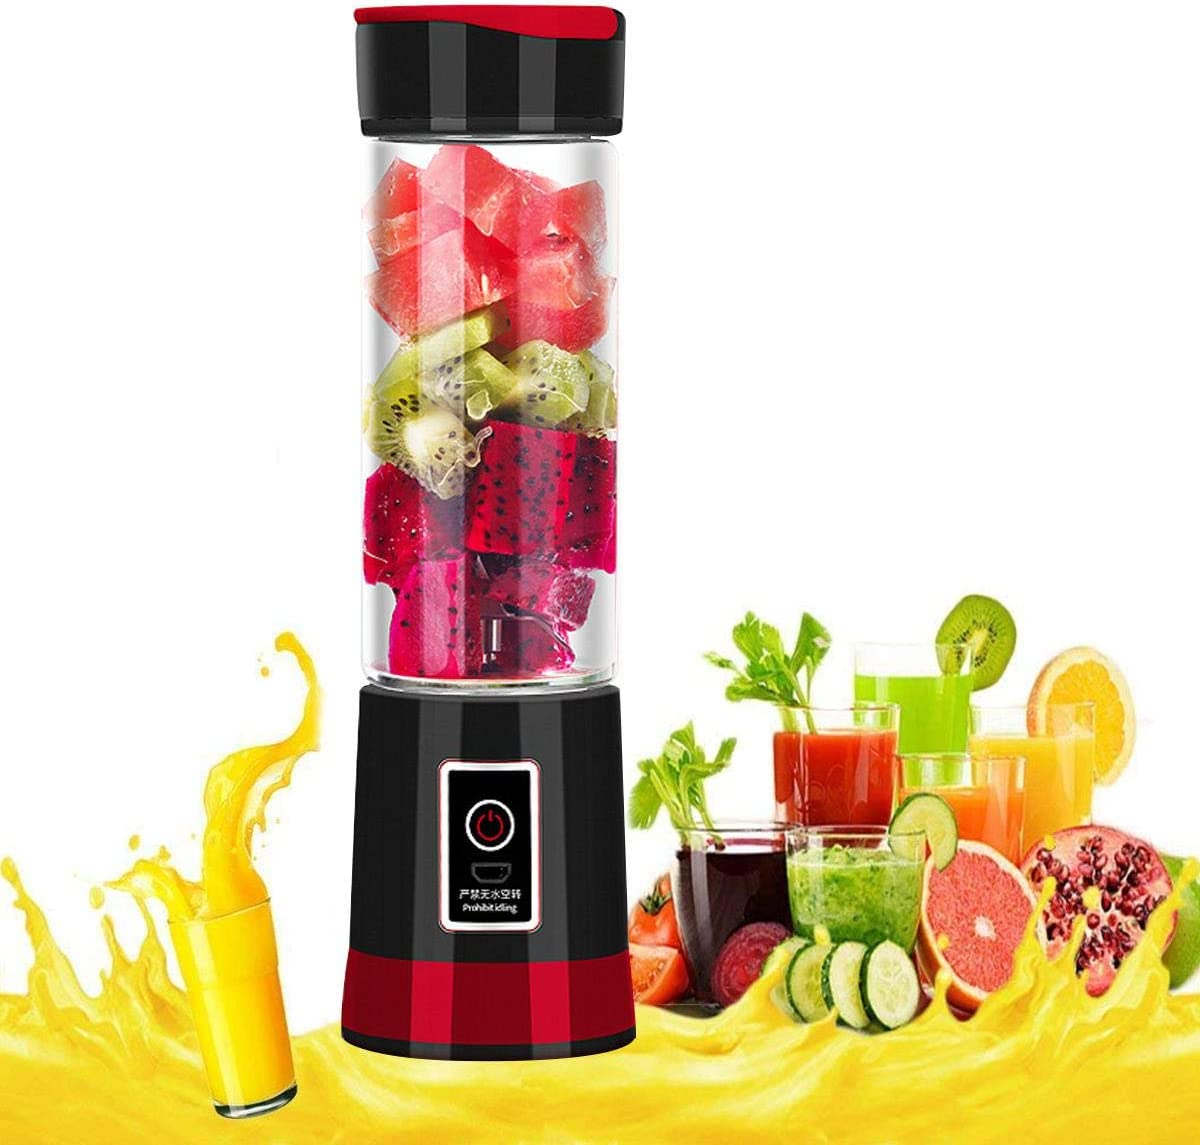 USB Juicer Cup, Upgraded Version Portable Single Serve Electric Rechargeable Fruit Mixer Water Bottle 500ML, Personal Size Juicer Blender with Travel Lid for for Shakes, Soup Smoothies Maker